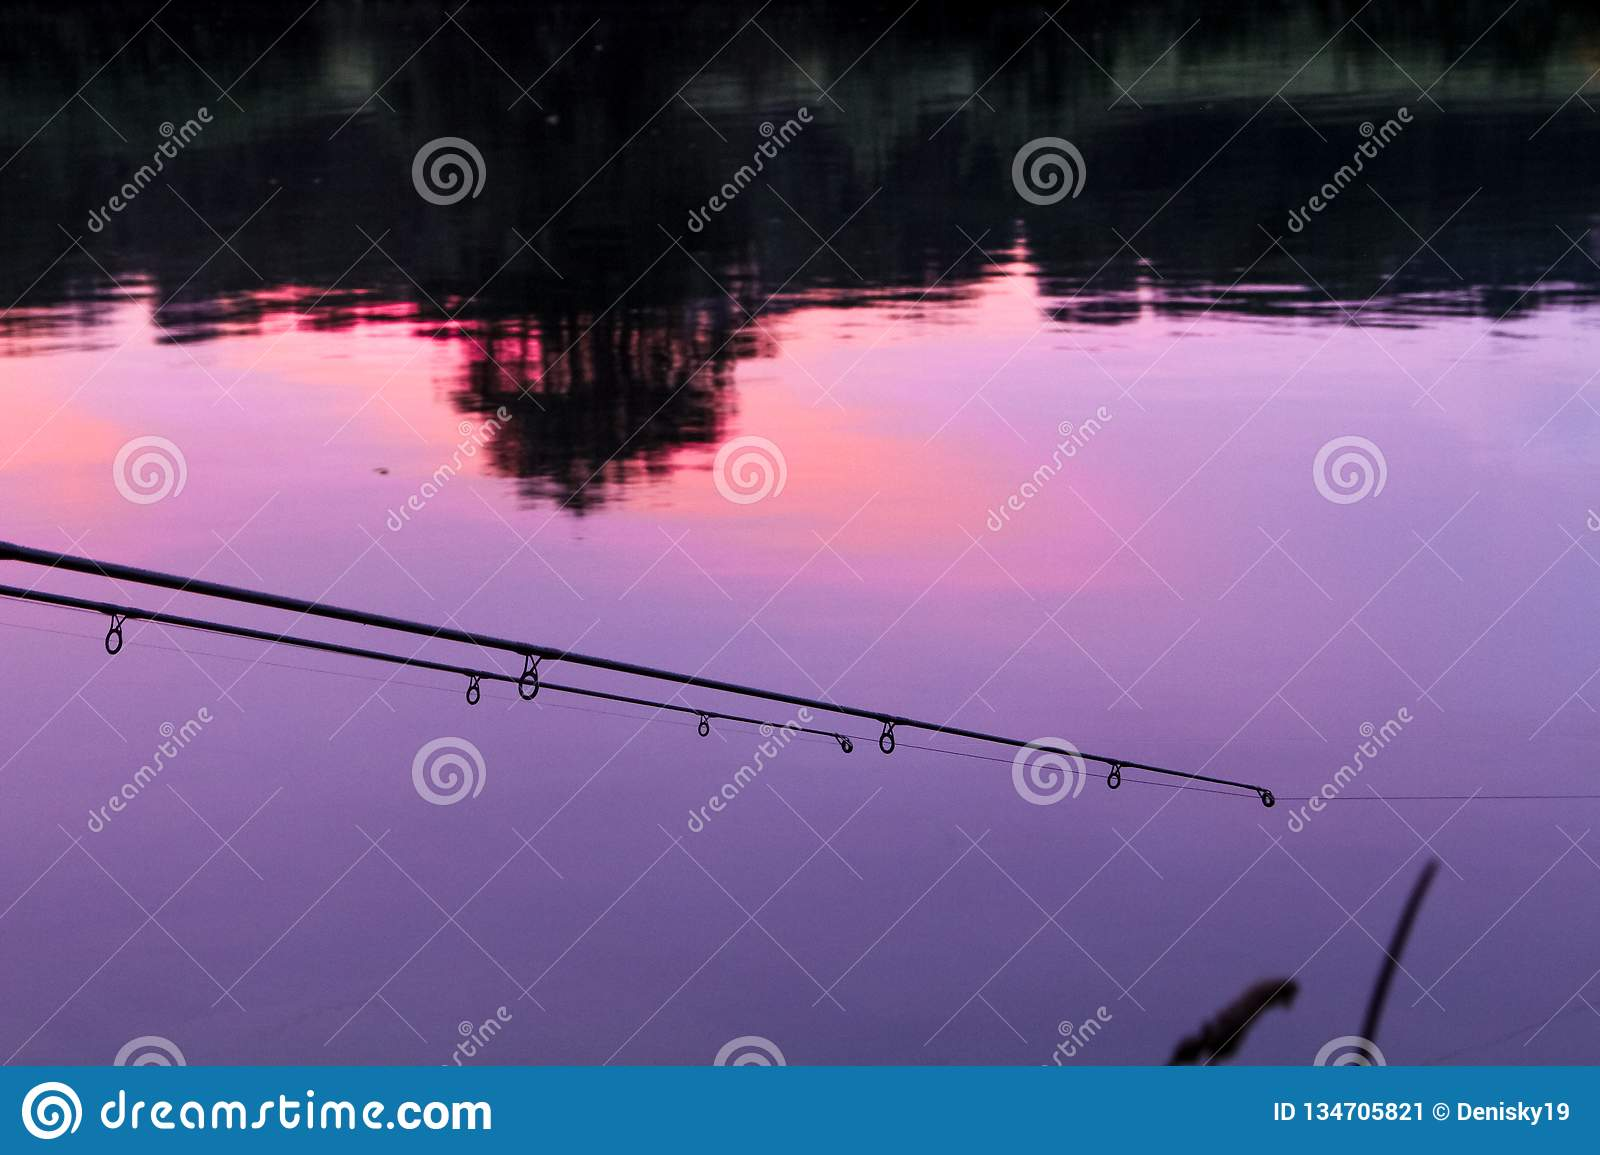 Fishing rod reflexing sunset in a river.